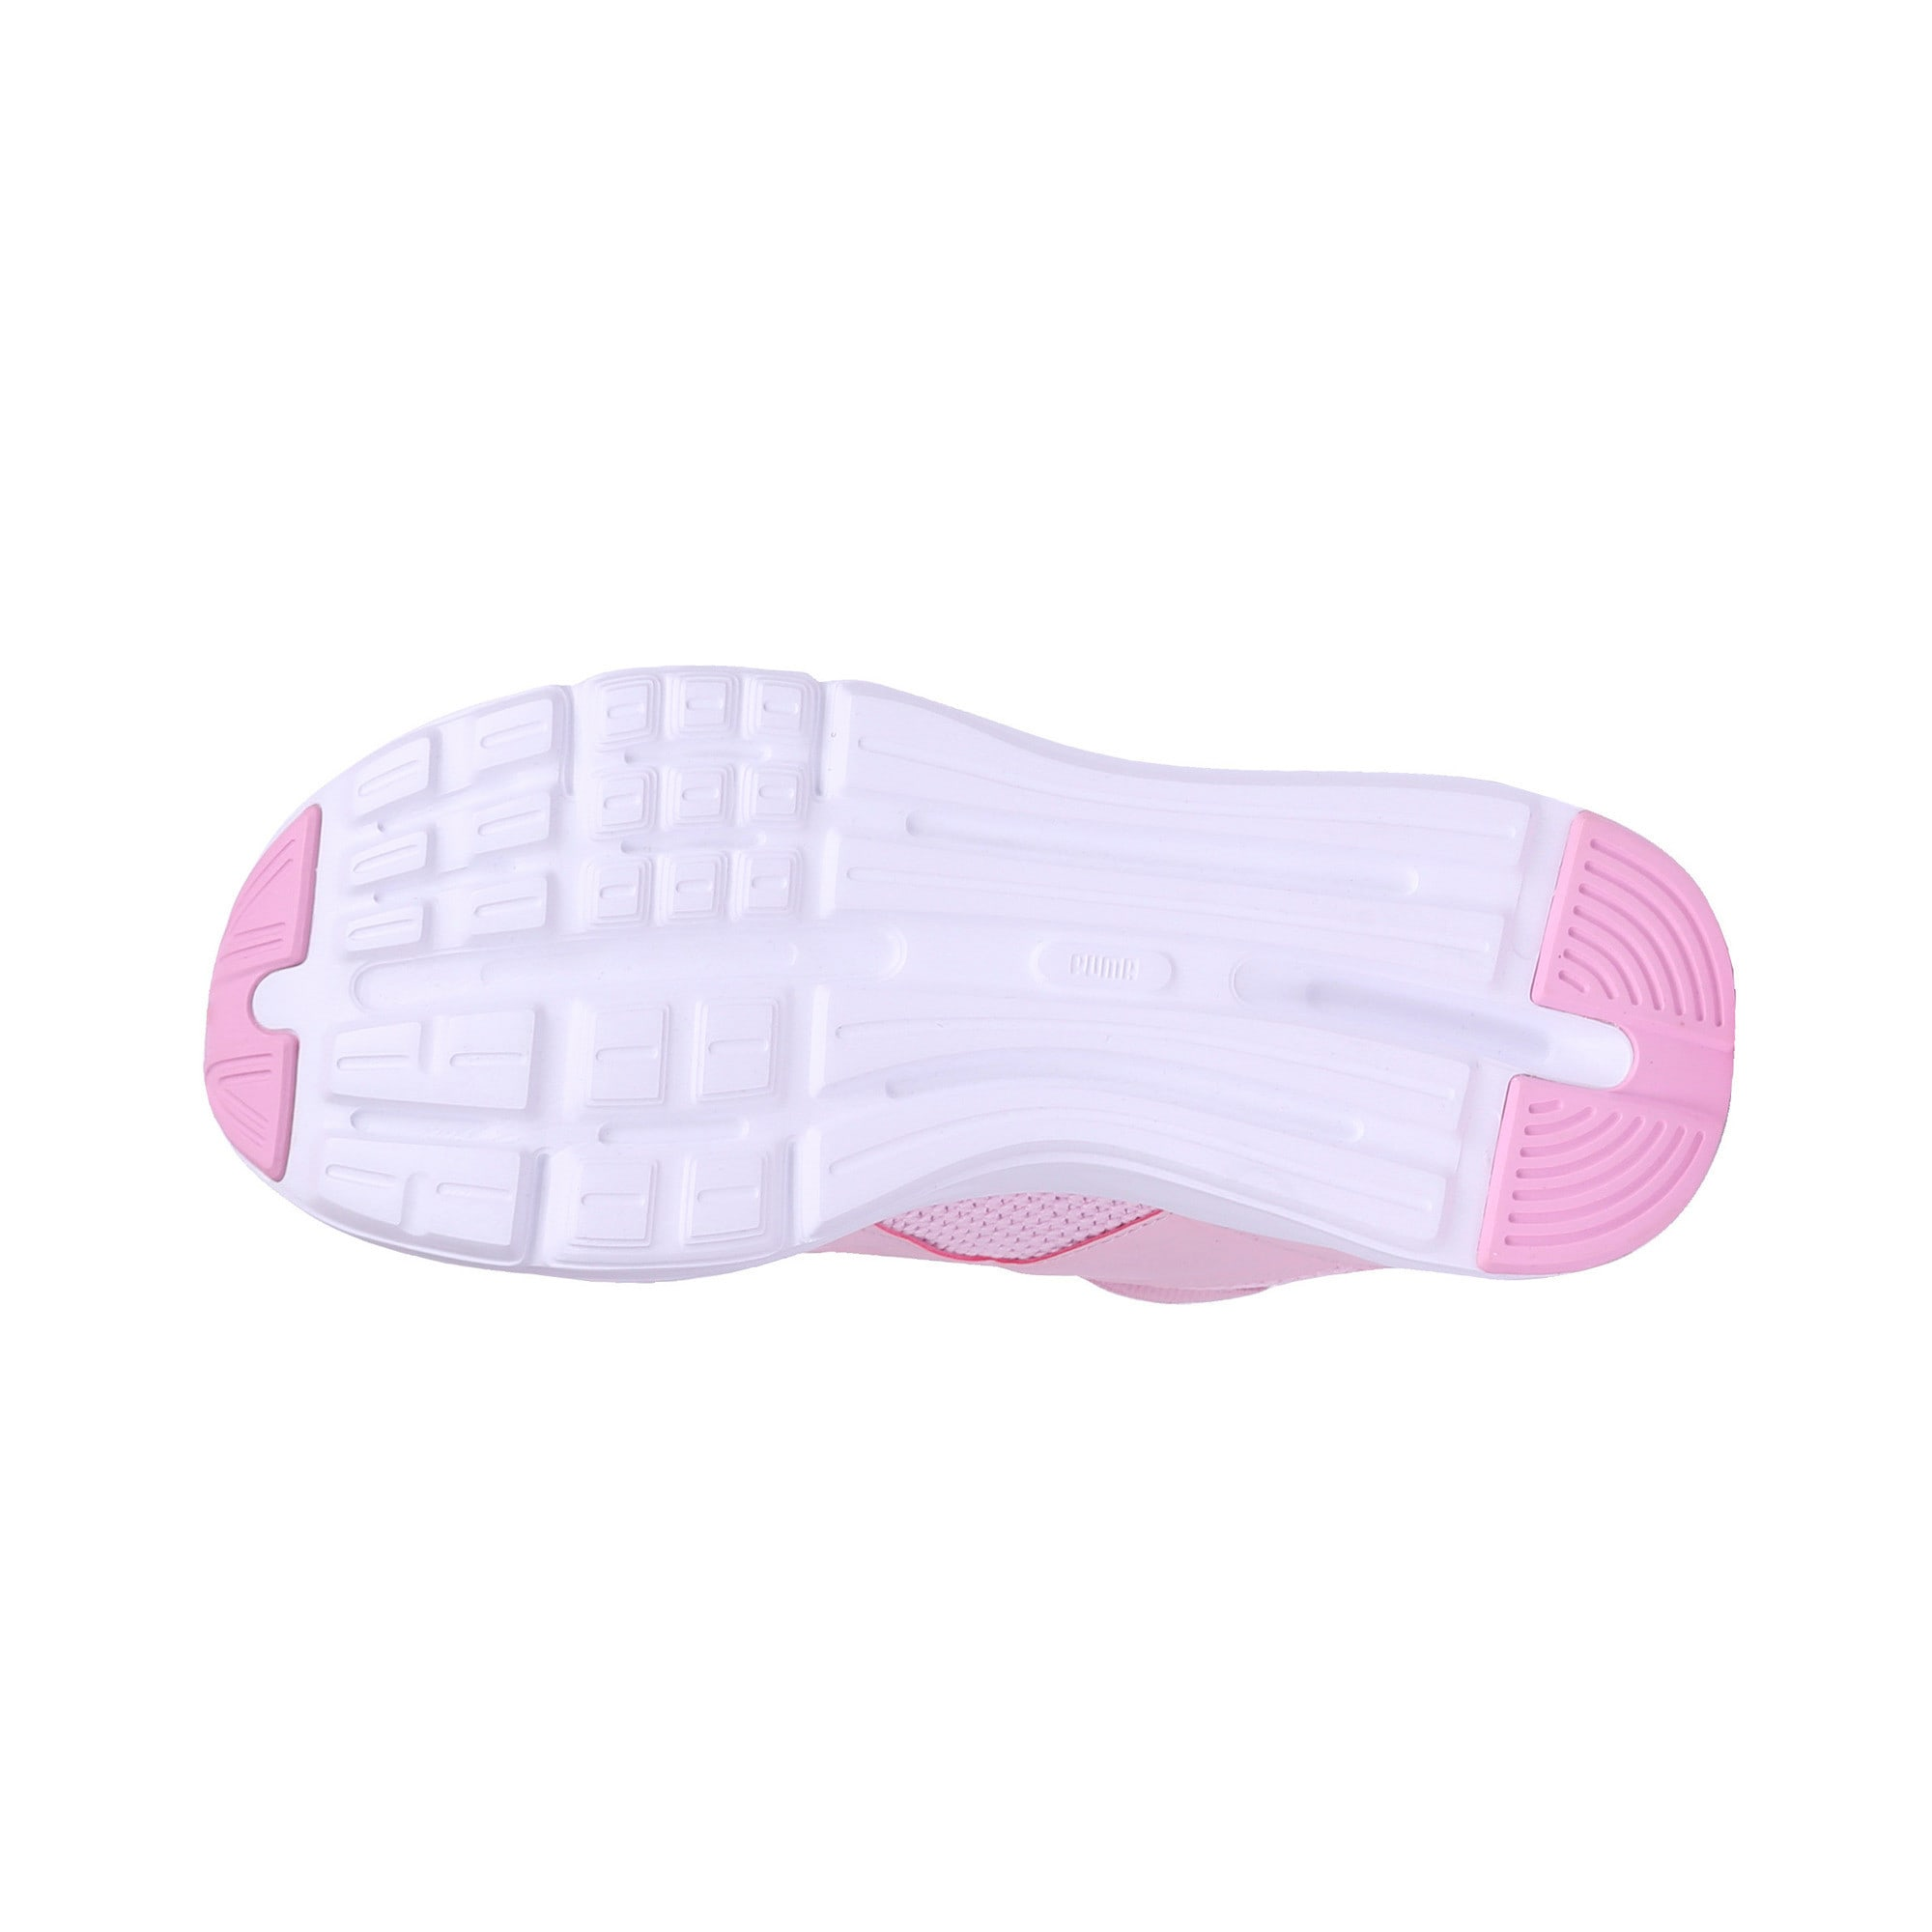 Thumbnail 4 of Enzo Weave Women's Trainers, Winsome Orchid-Puma White, medium-IND